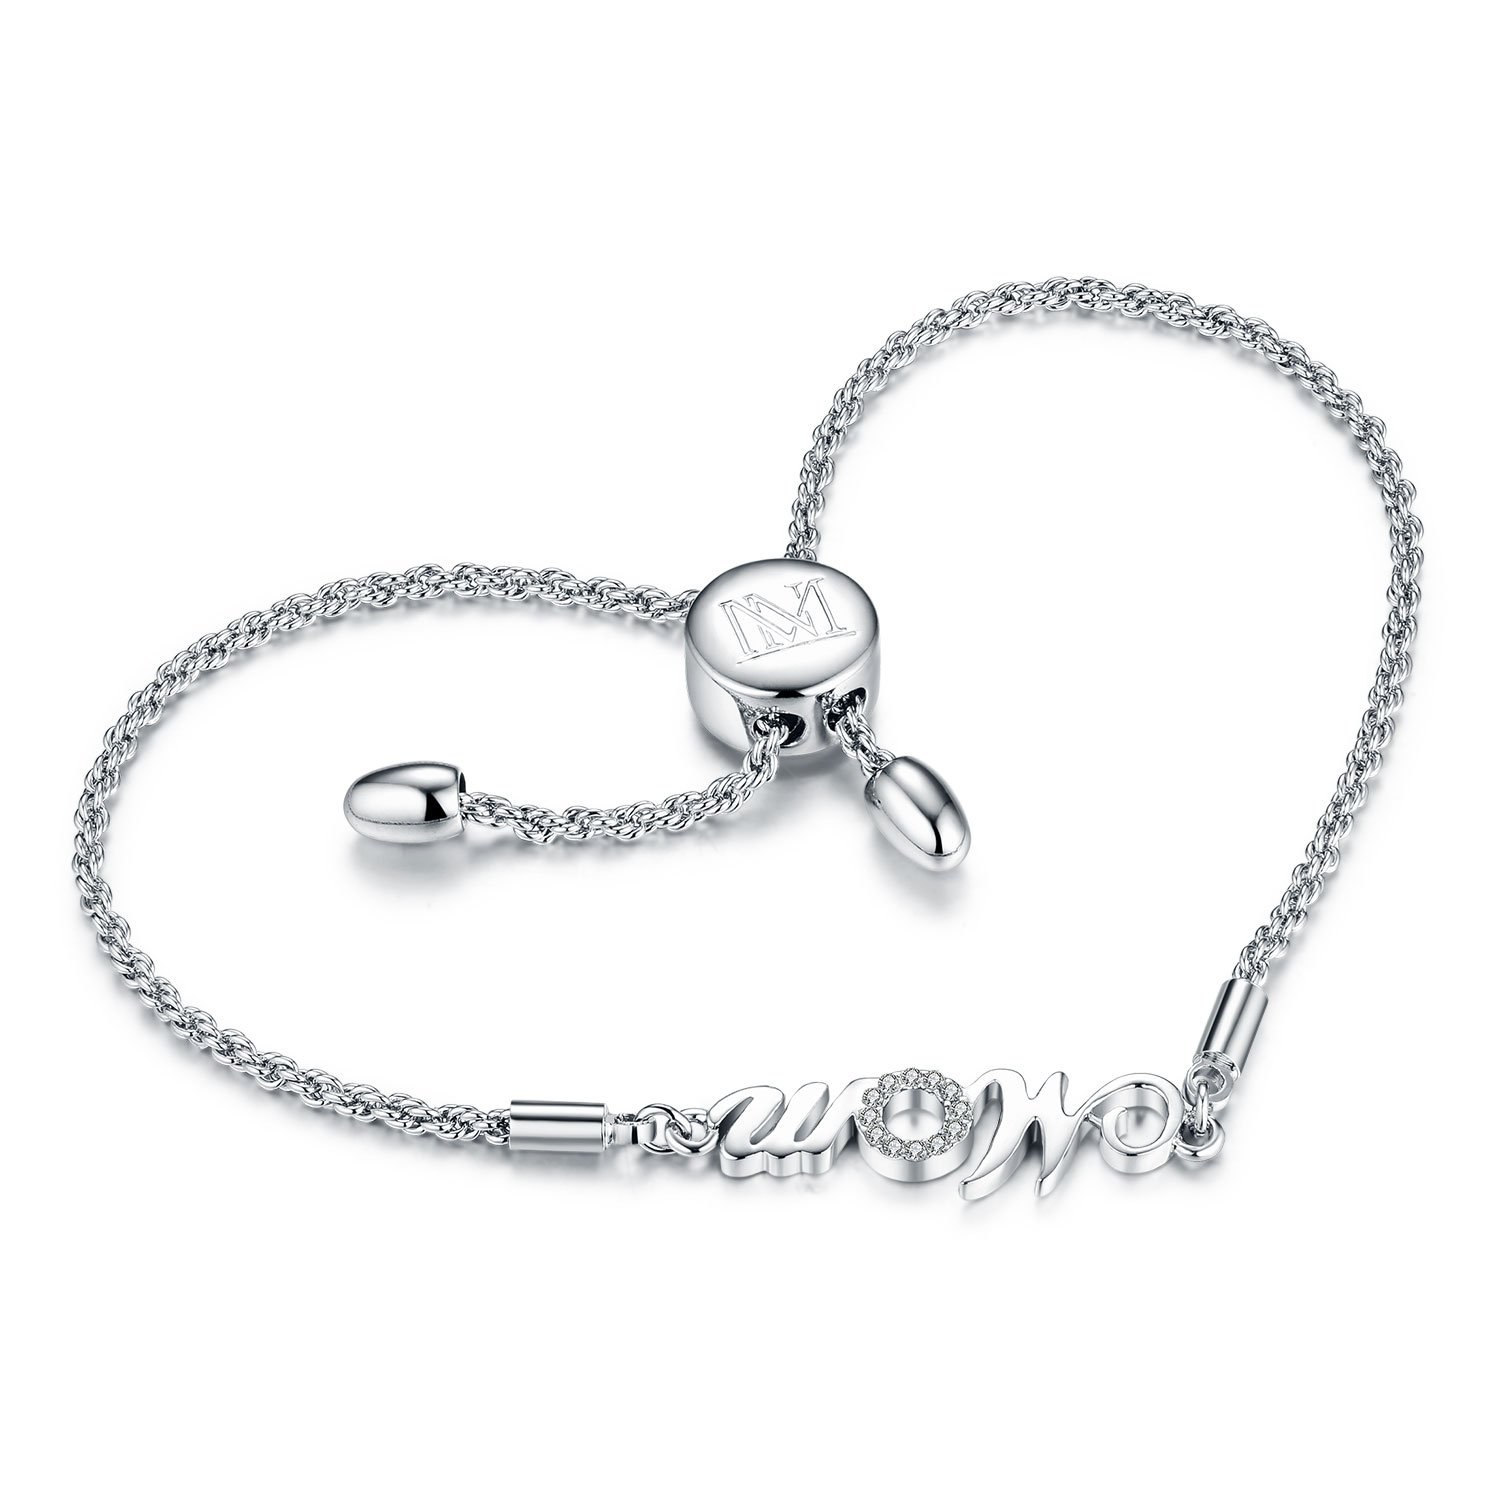 "NINAMAID ""Mom"" Charm Expandable Bolo Bracelet with Cubic Zirconia Adjustable White Gold Plated Copper Jewelry Gift for Mother by NINAMAID (Image #2)"